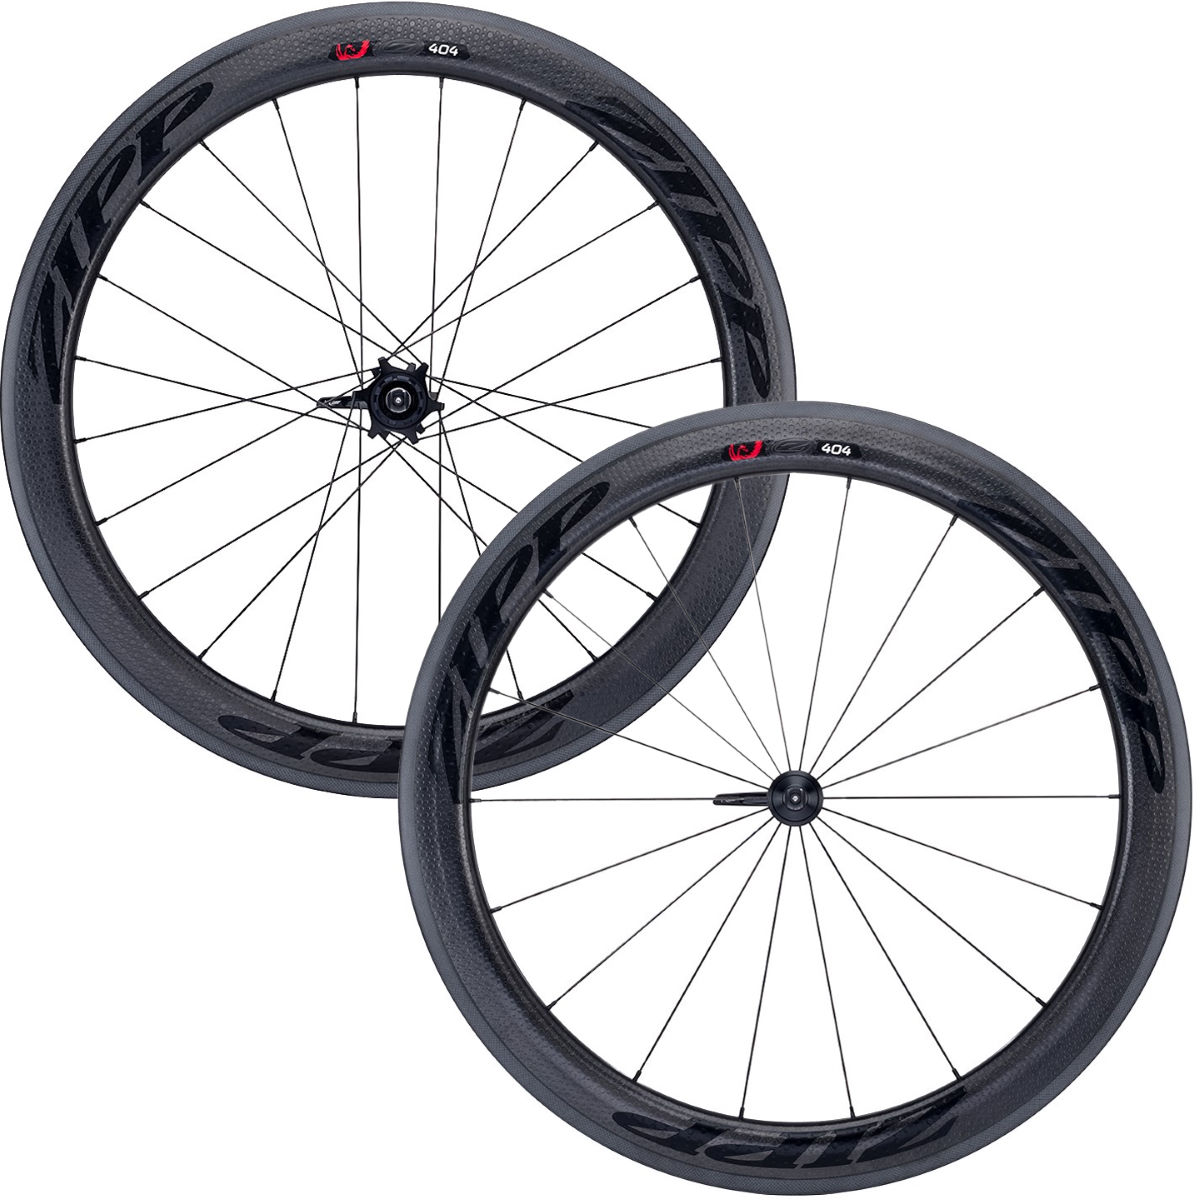 Set of wheels Zipp 404 Firecrest for cover (carbon, Shimano) - Competition wheels